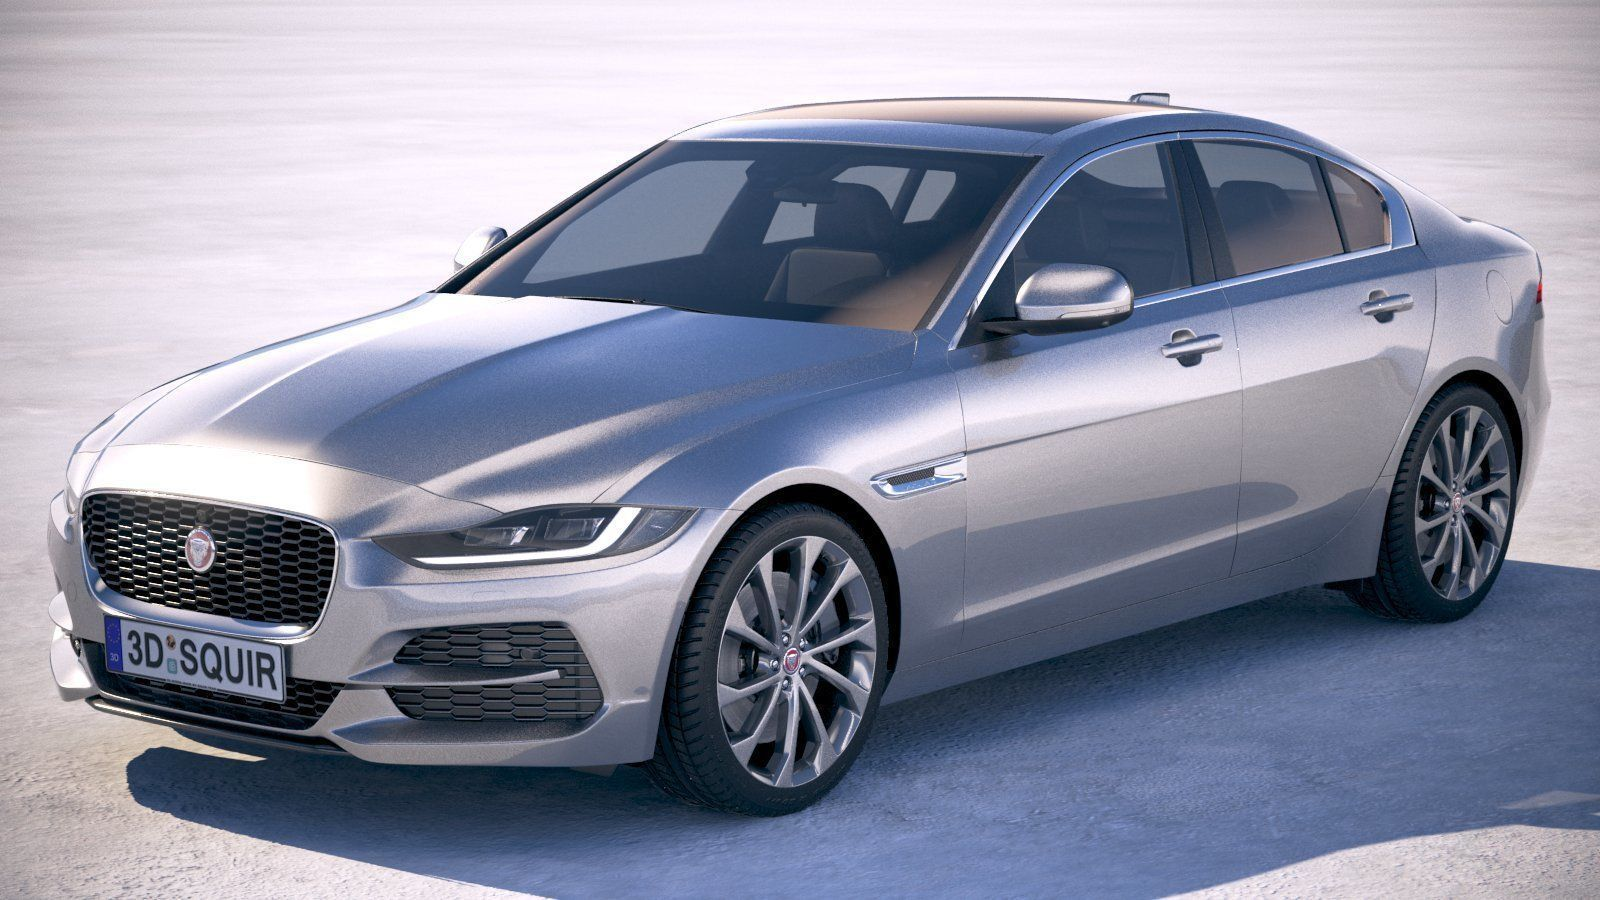 Jaguar Xe 2020 3d Model